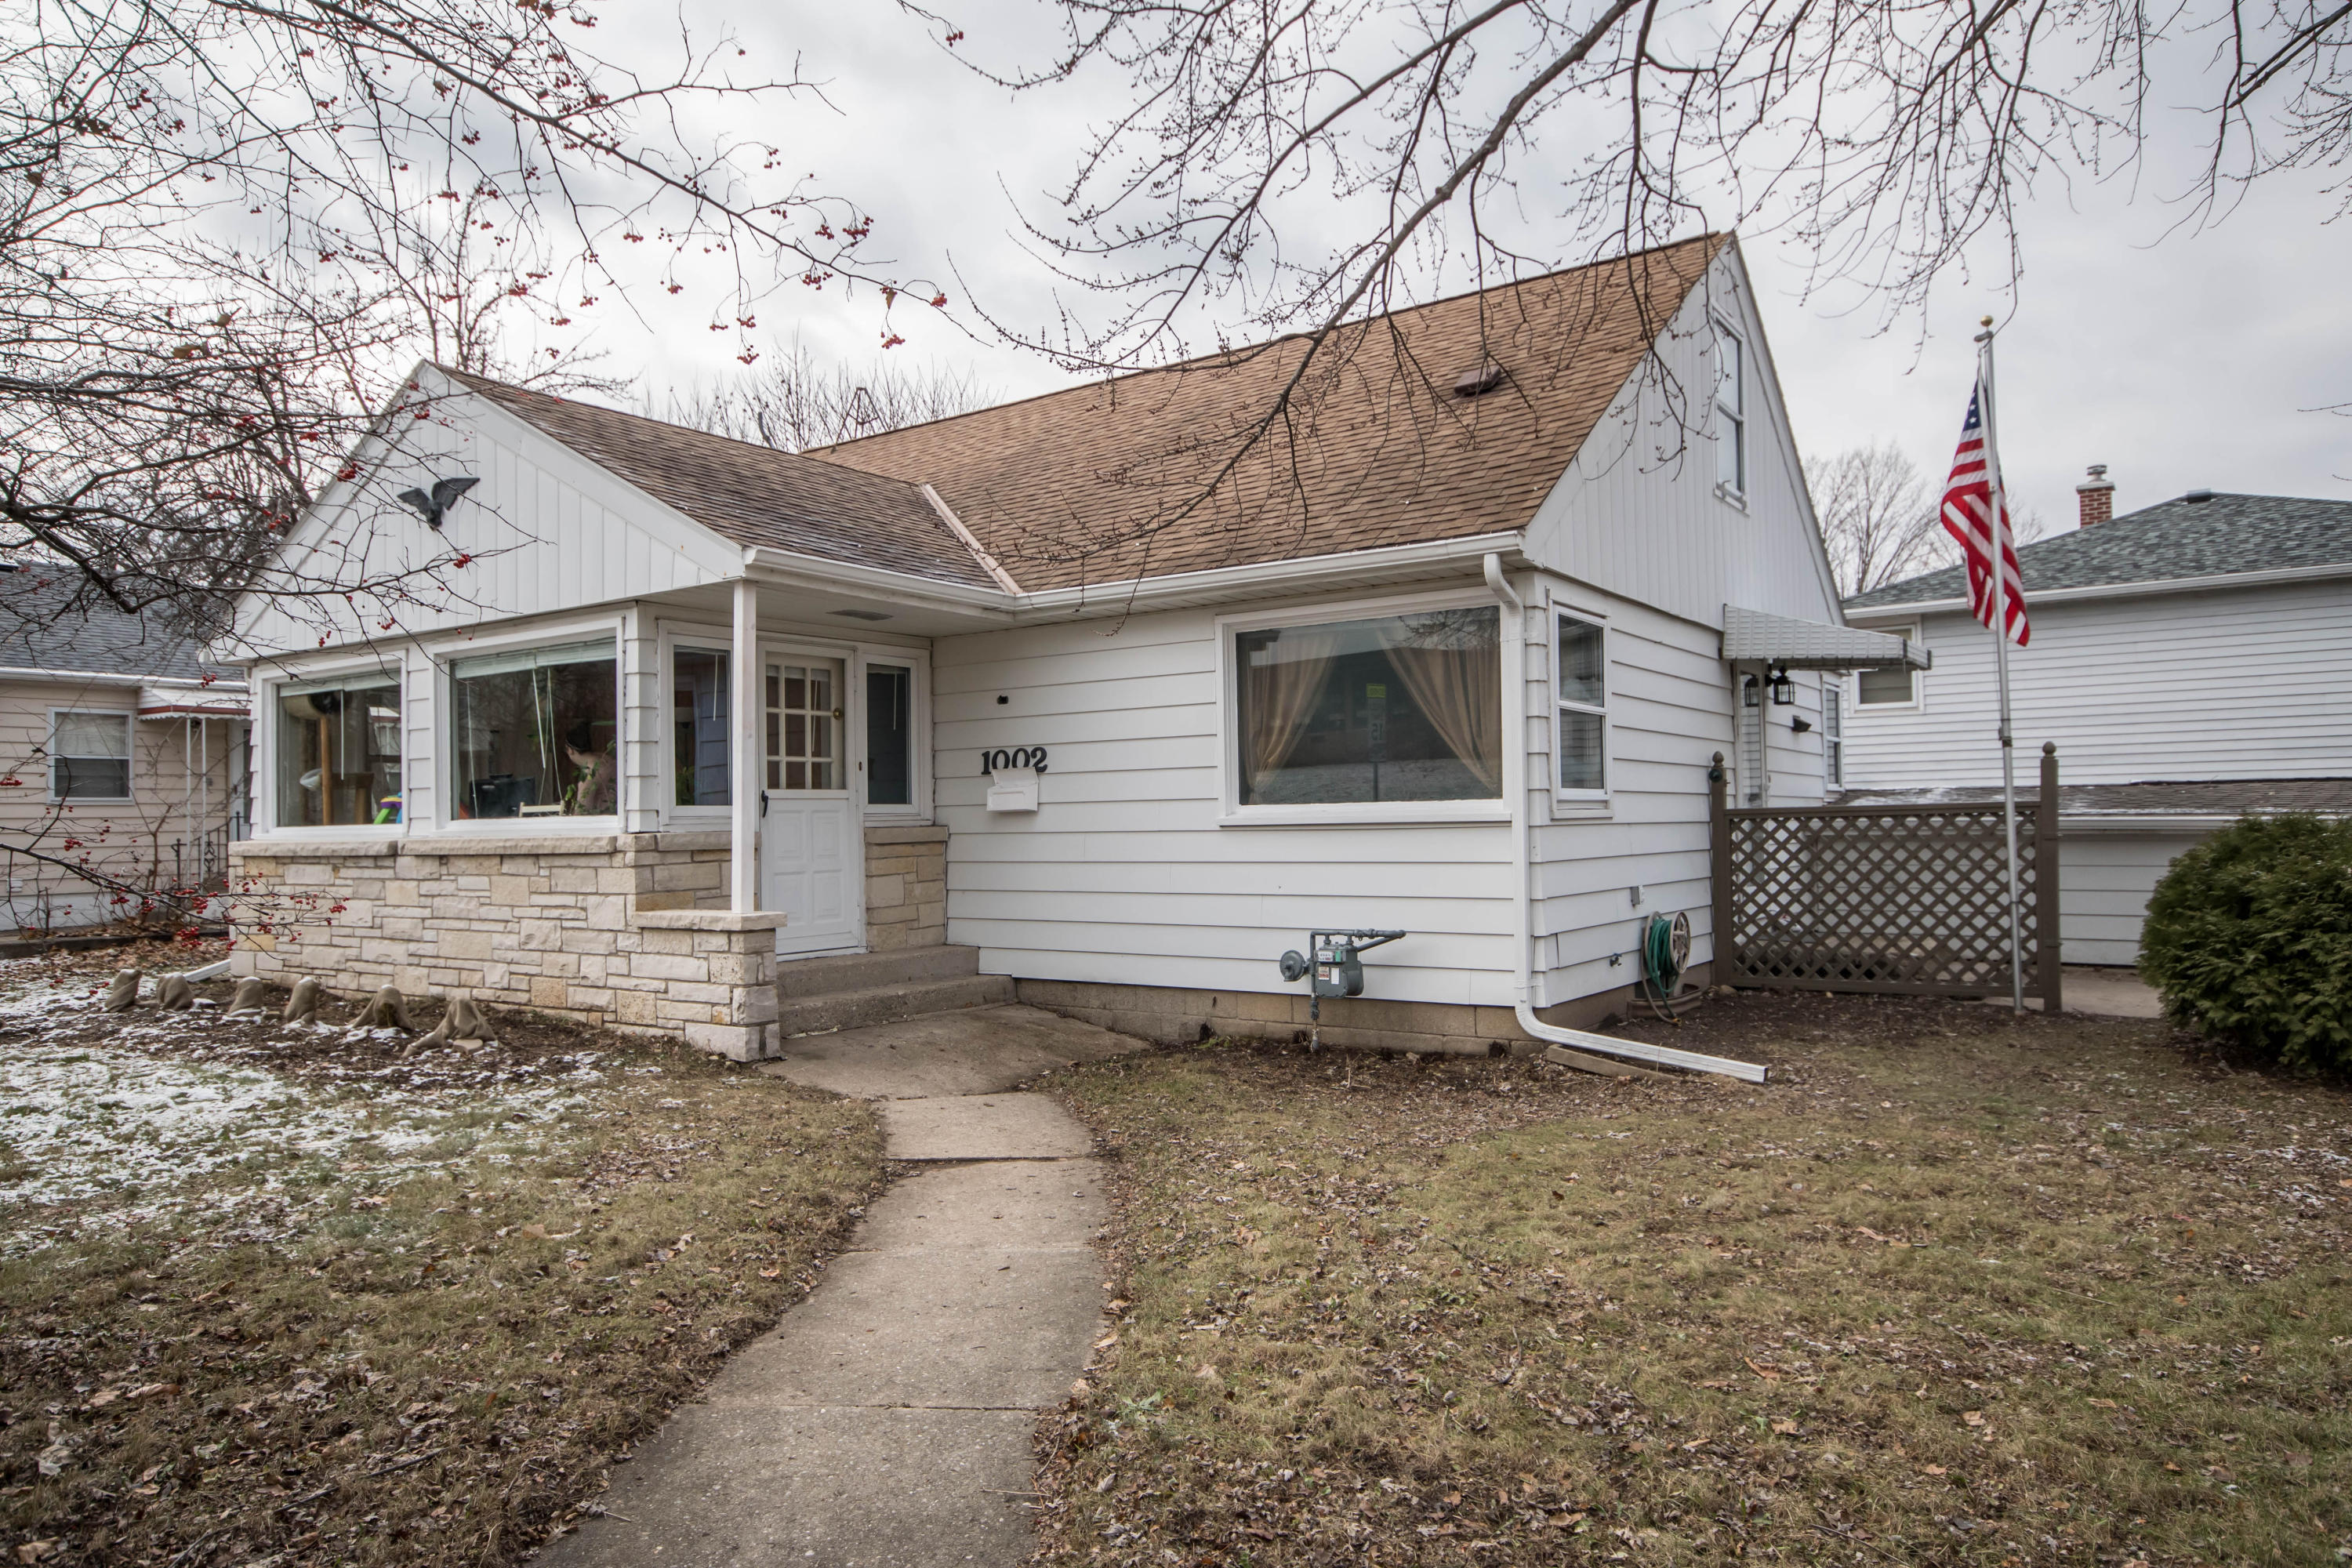 1002 East Ave, Waukesha, Wisconsin 53186, 3 Bedrooms Bedrooms, 6 Rooms Rooms,1 BathroomBathrooms,Single-Family,For Sale,East Ave,1616132